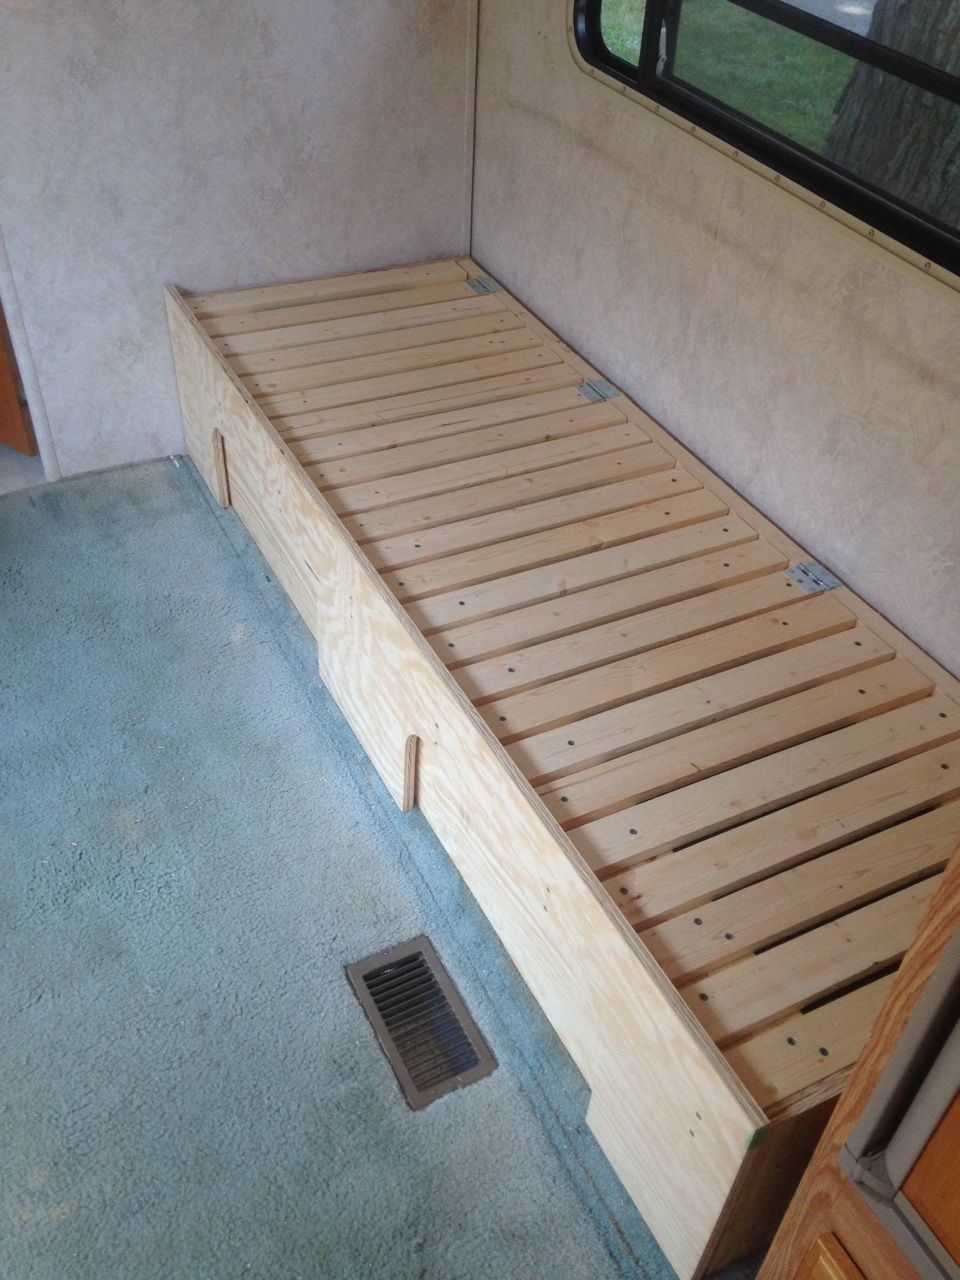 Diy Camper Couch Bed With Storage Photo 1 Campers